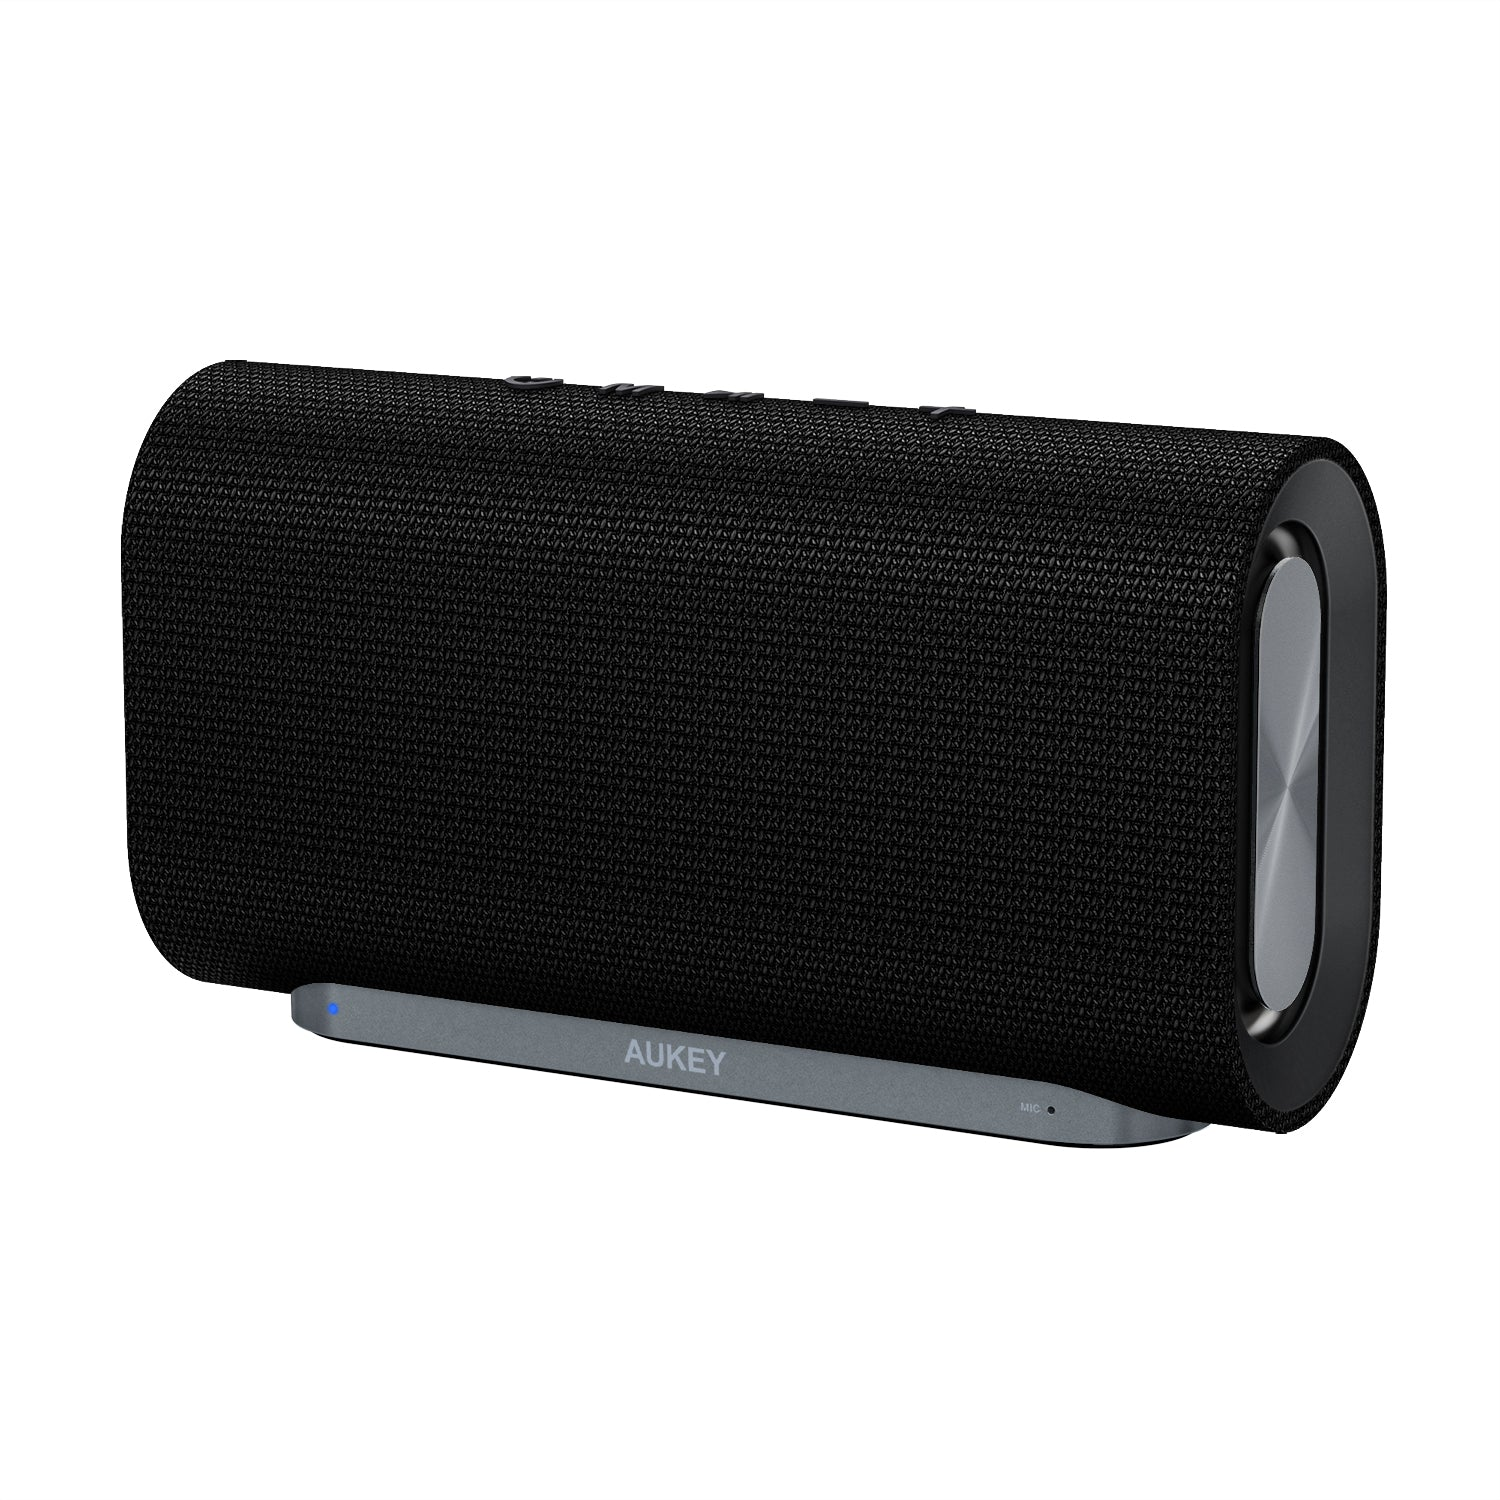 AUKEY SK-M30 Eclipse Wireless Speaker with Enhanced Bass & Dual Passive Radiators